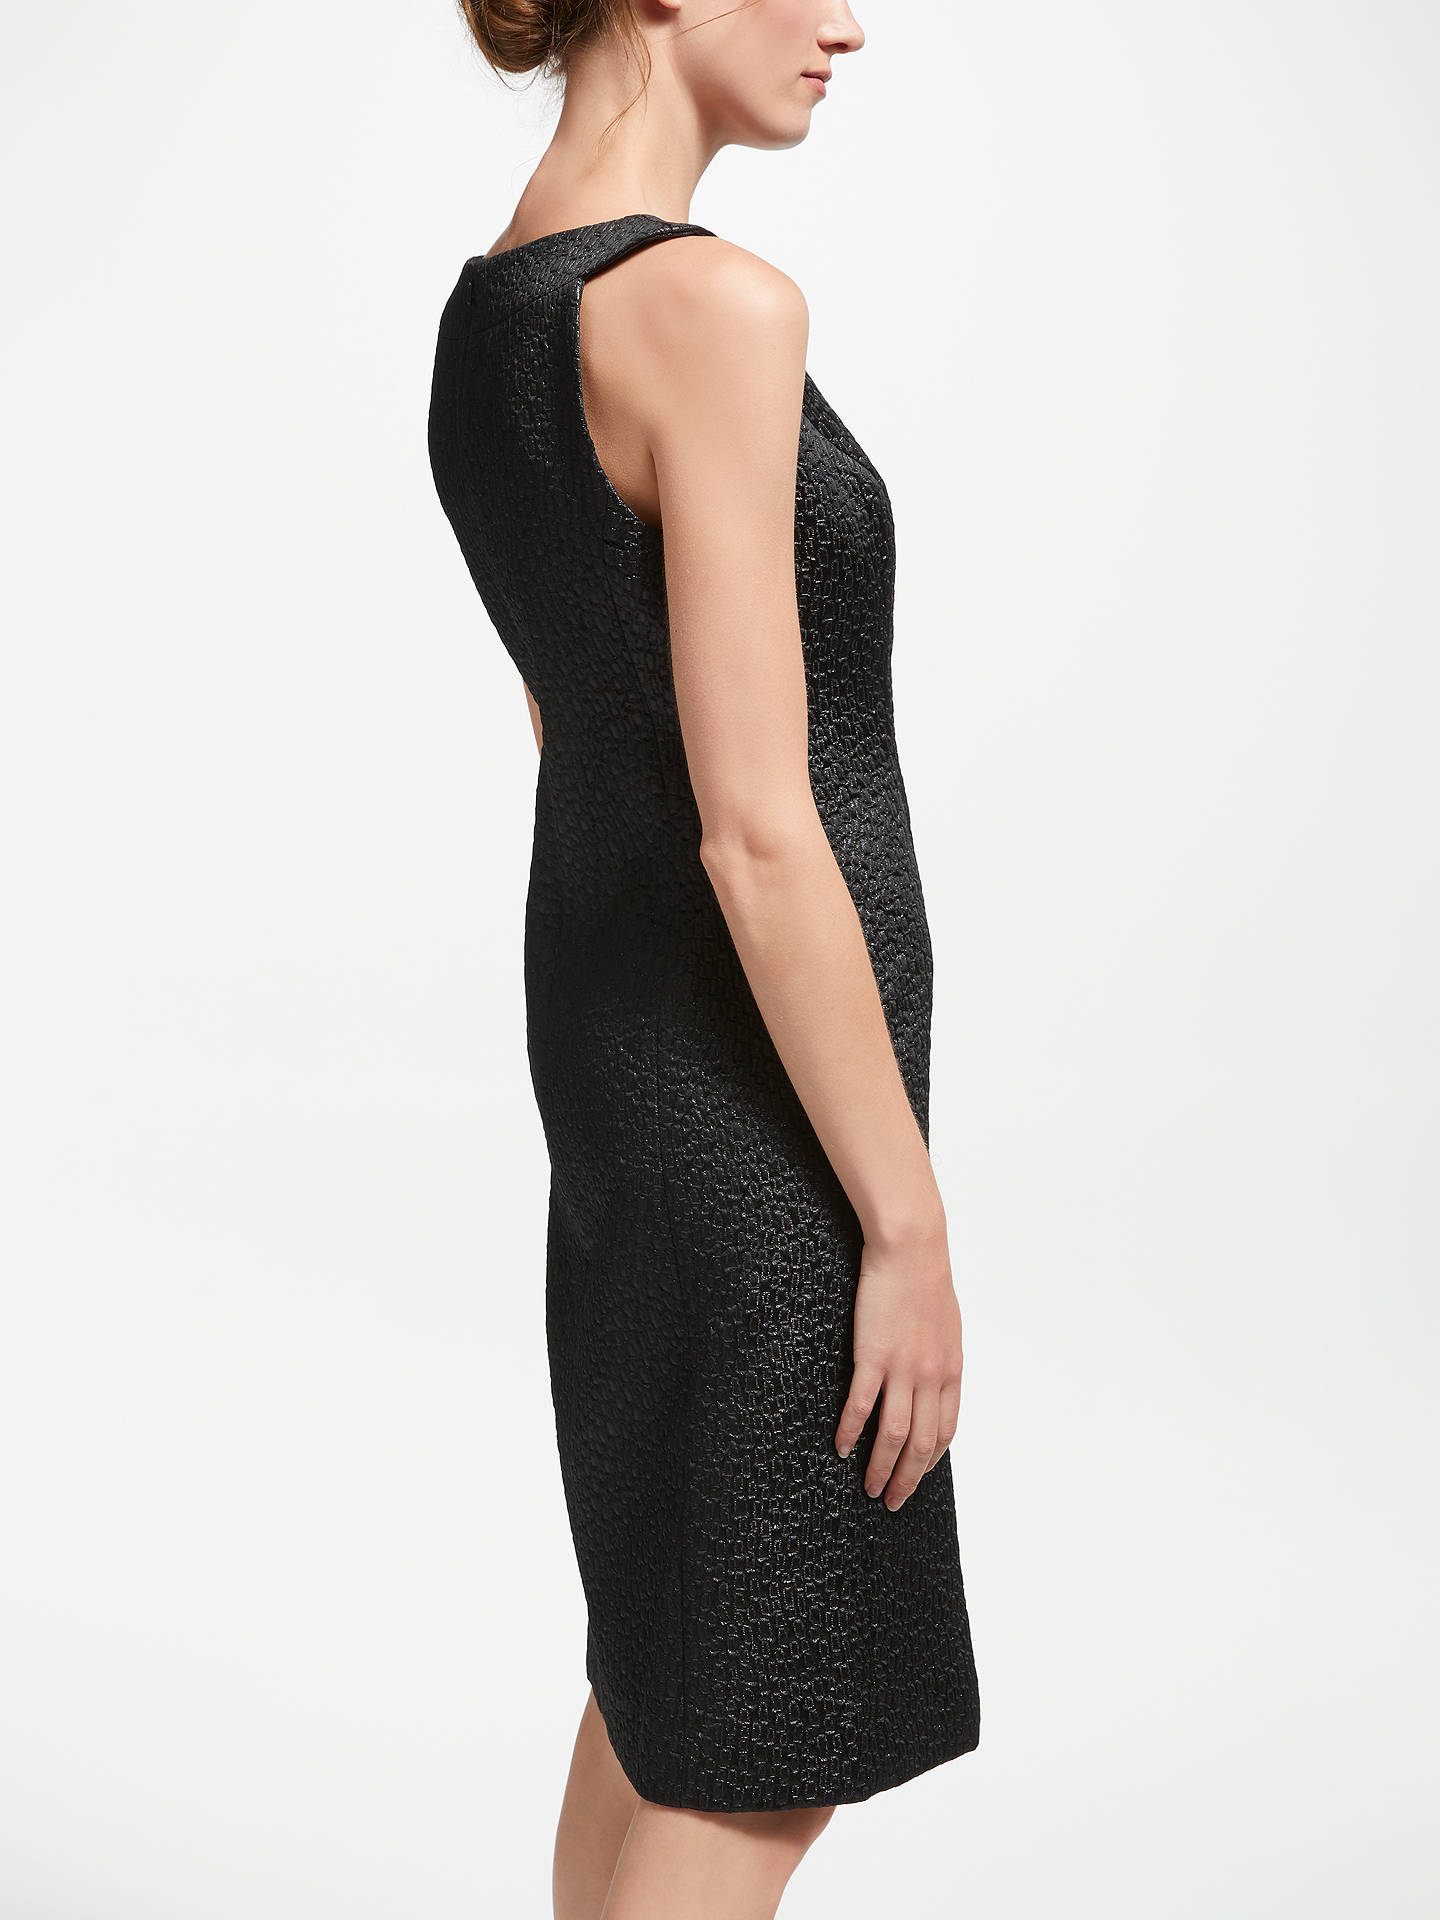 BuyBruce by Bruce Oldfield Jacquard Fit And Flare Dress, Black, 12 Online at johnlewis.com